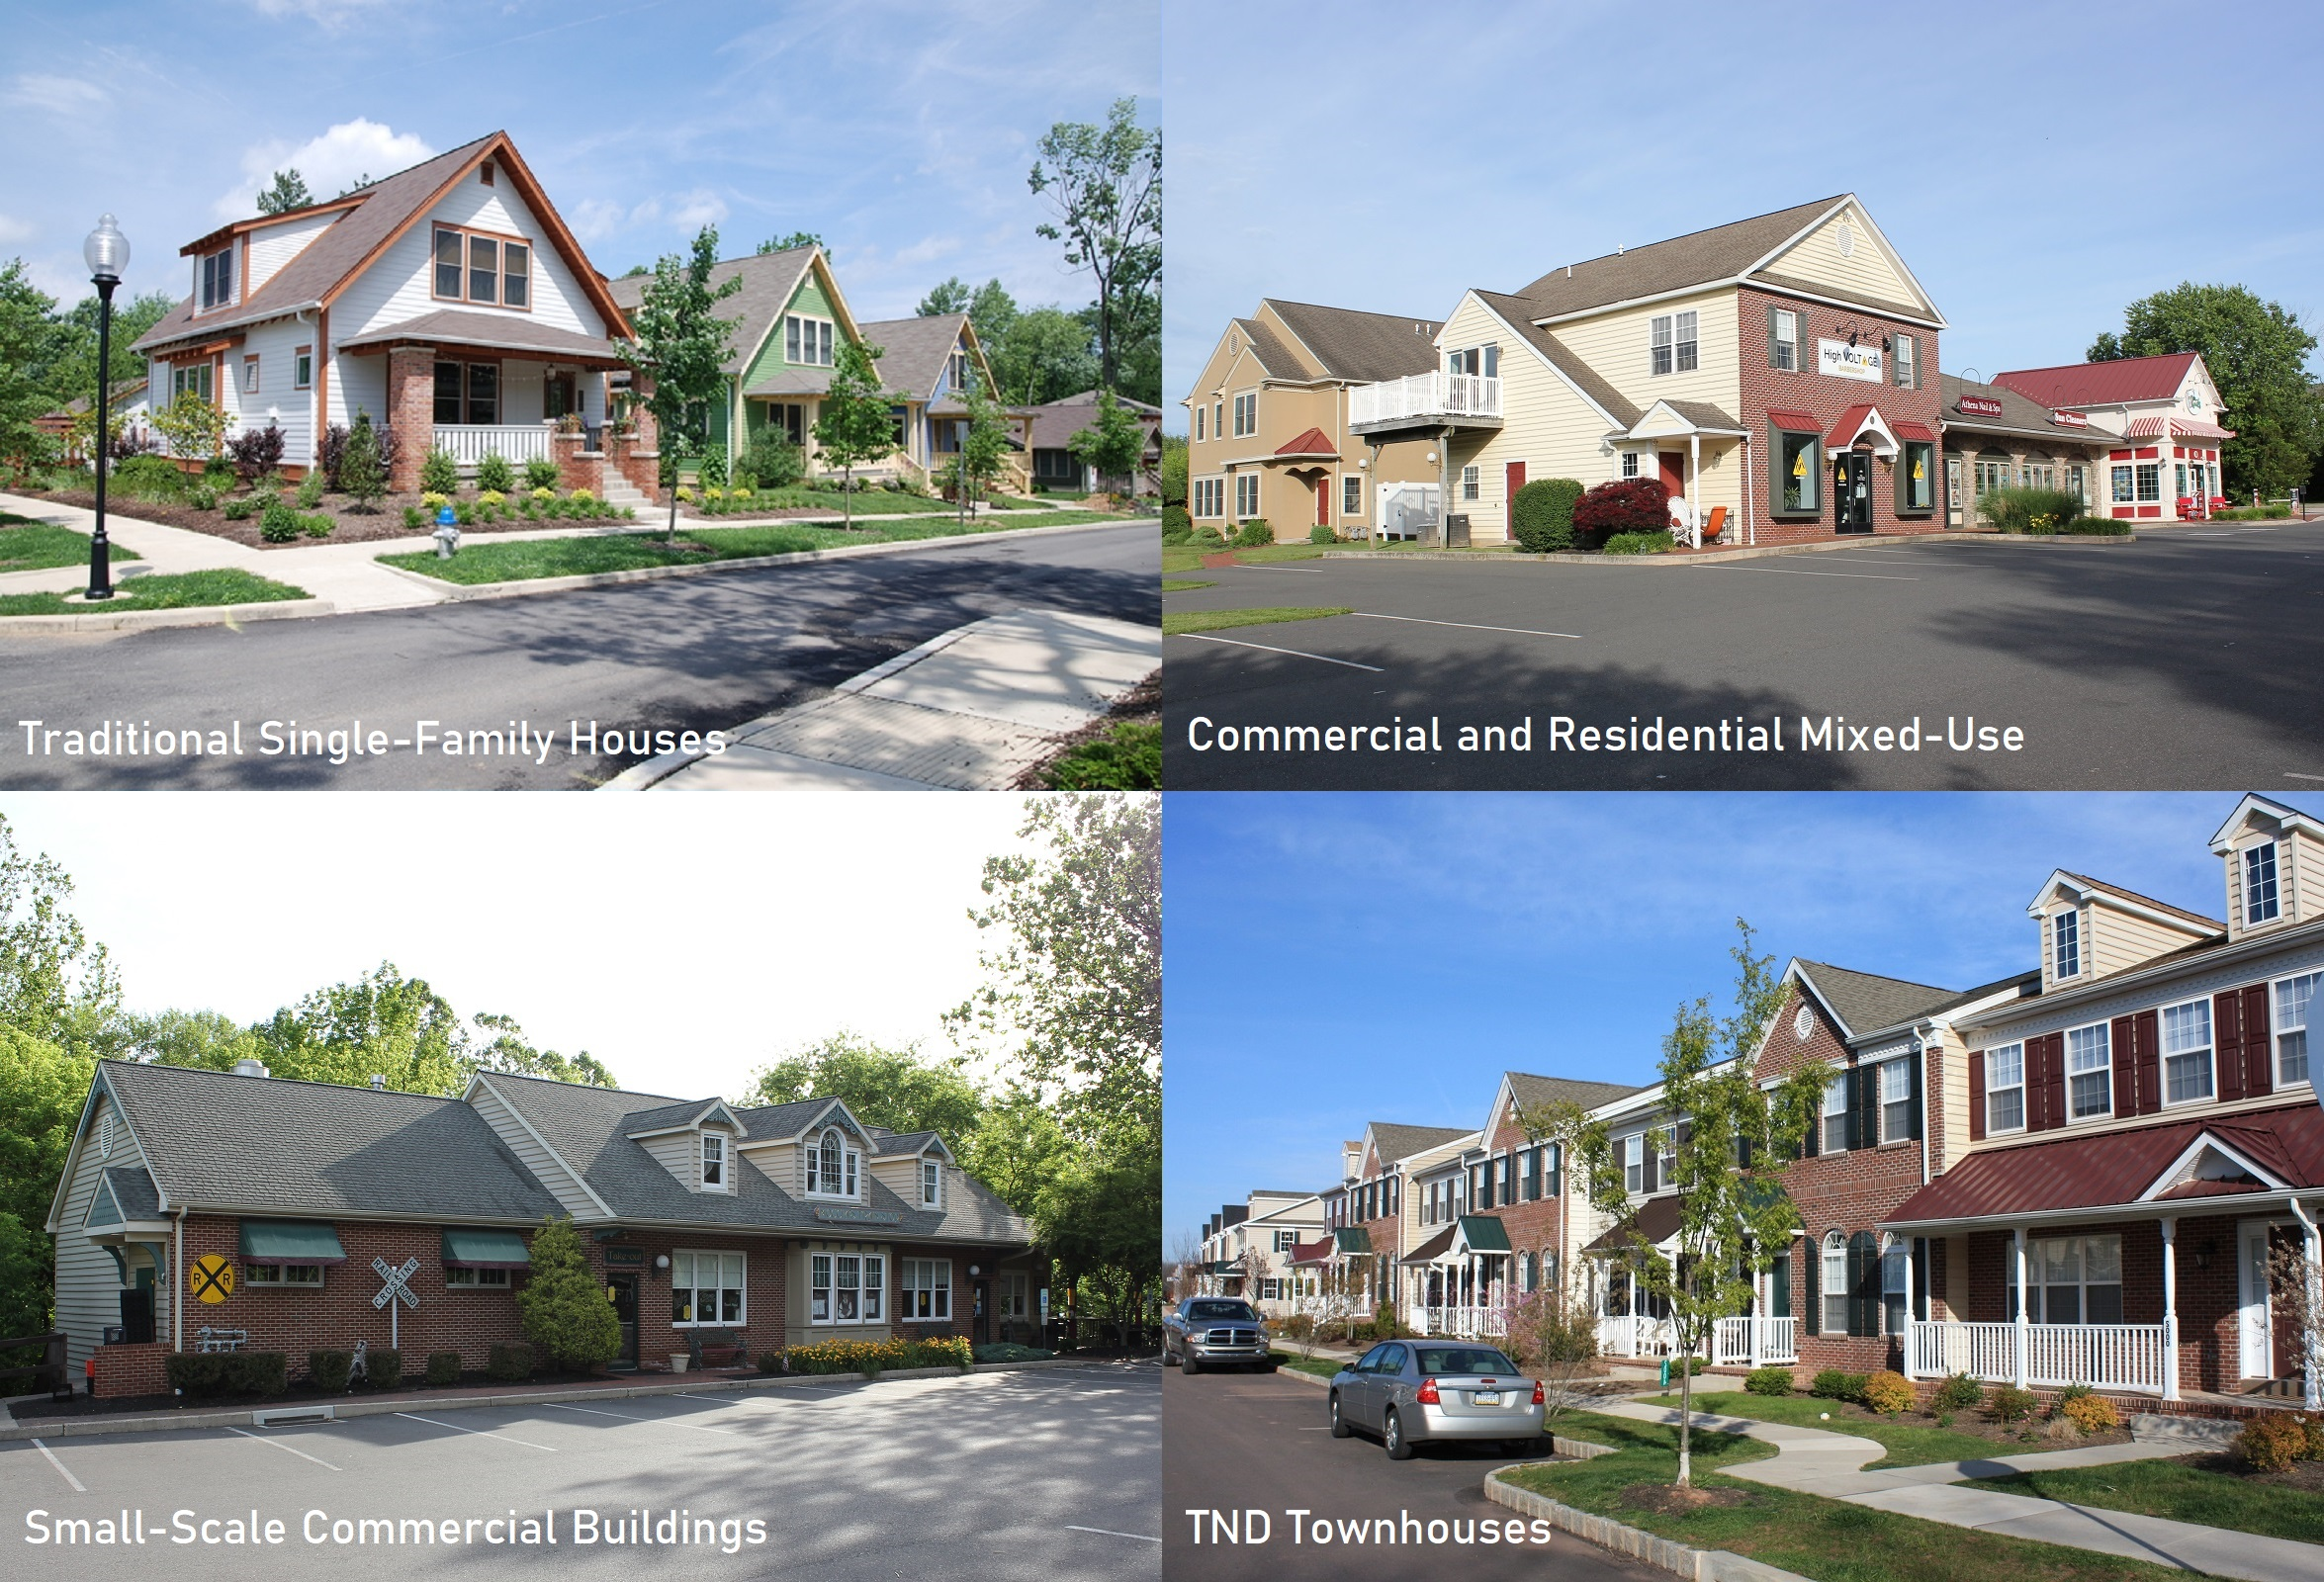 Traditional Neighborhood Development can include residential and commercial buildings of manytypes and sizes. The photos below show a few examples of common building types in the Traditional Neighborhood Development style .